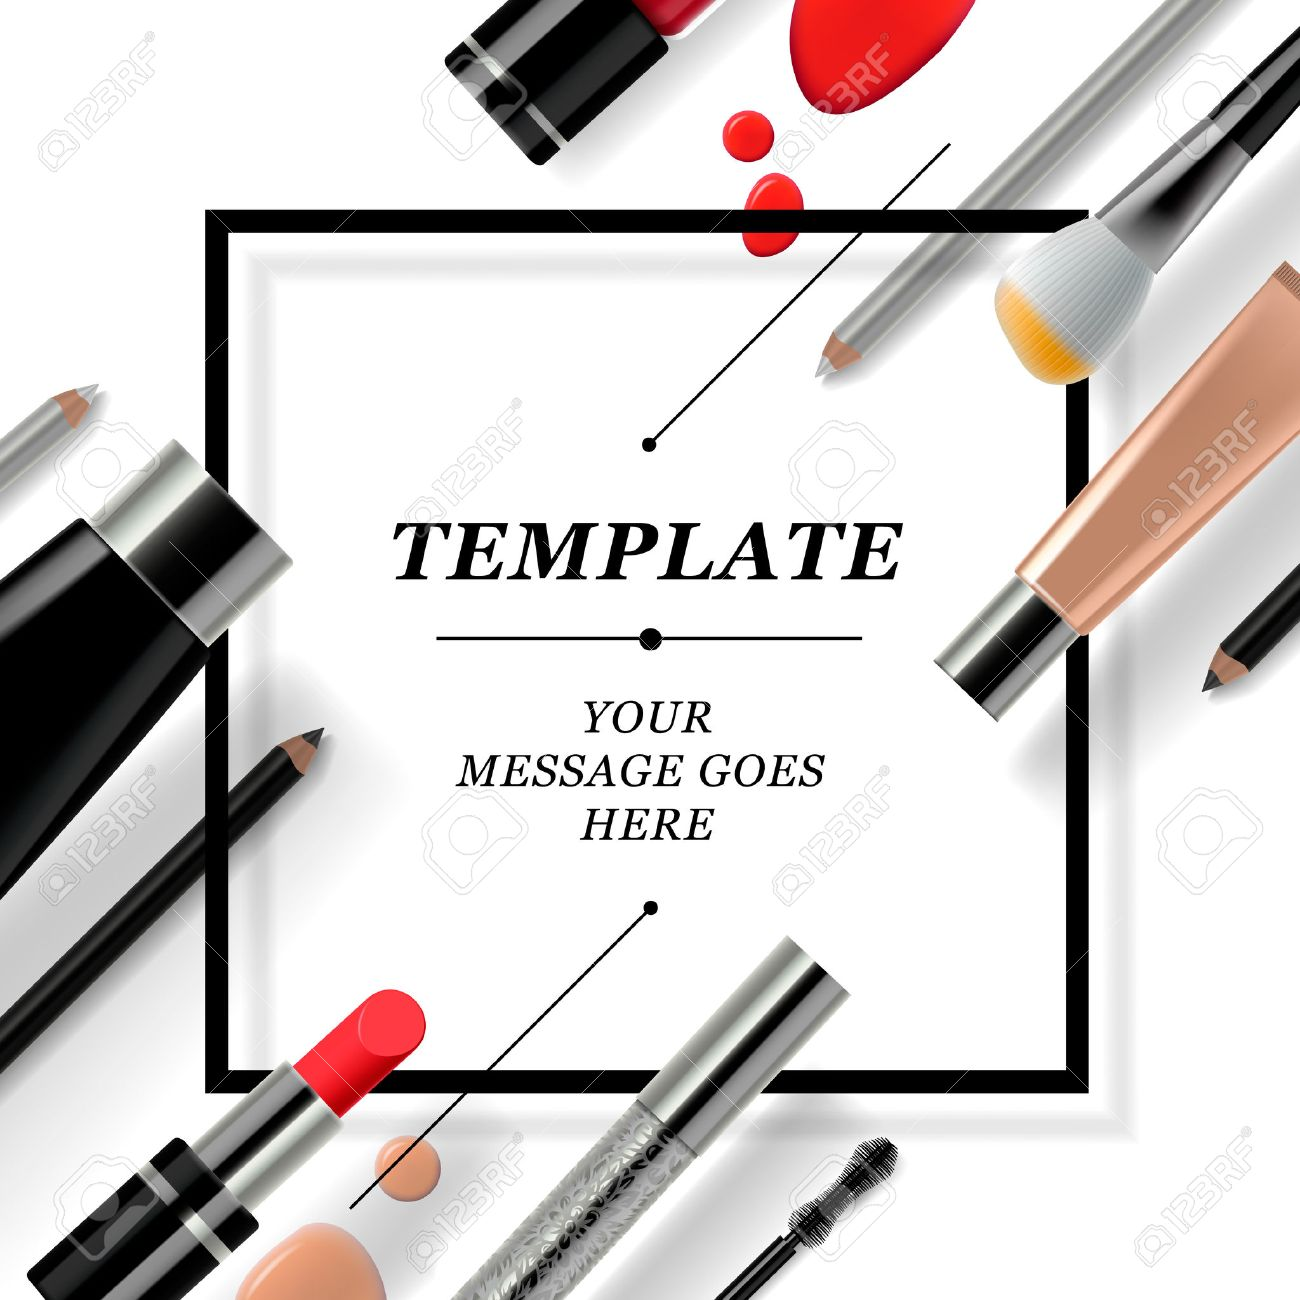 Makeup template with collection of make up cosmetics and accessories, vector illustration. Standard-Bild - 34826680